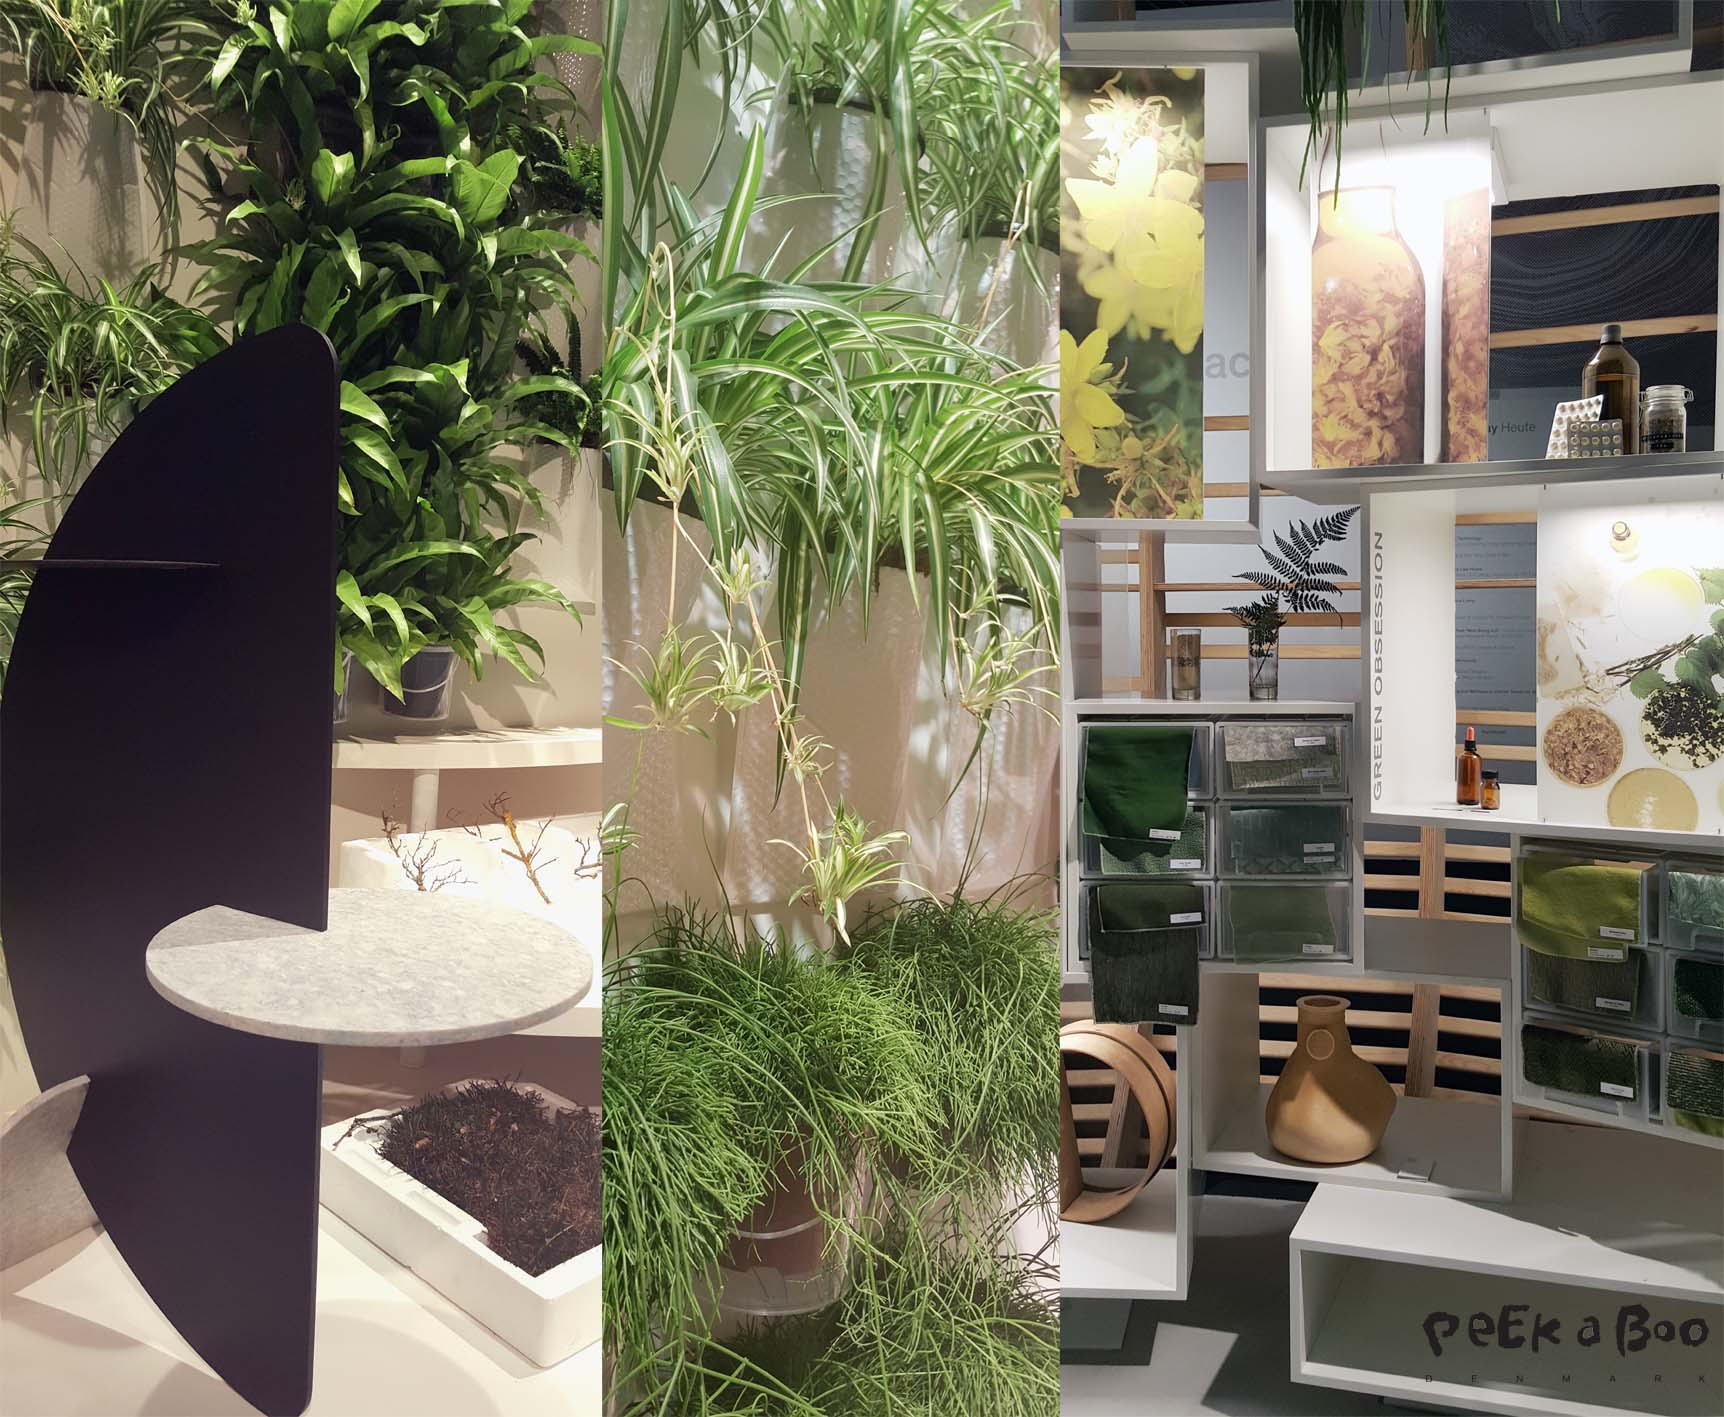 The area for Nourish was filled with botanic. Dried plants and fresh wre growing as a vertical garden.